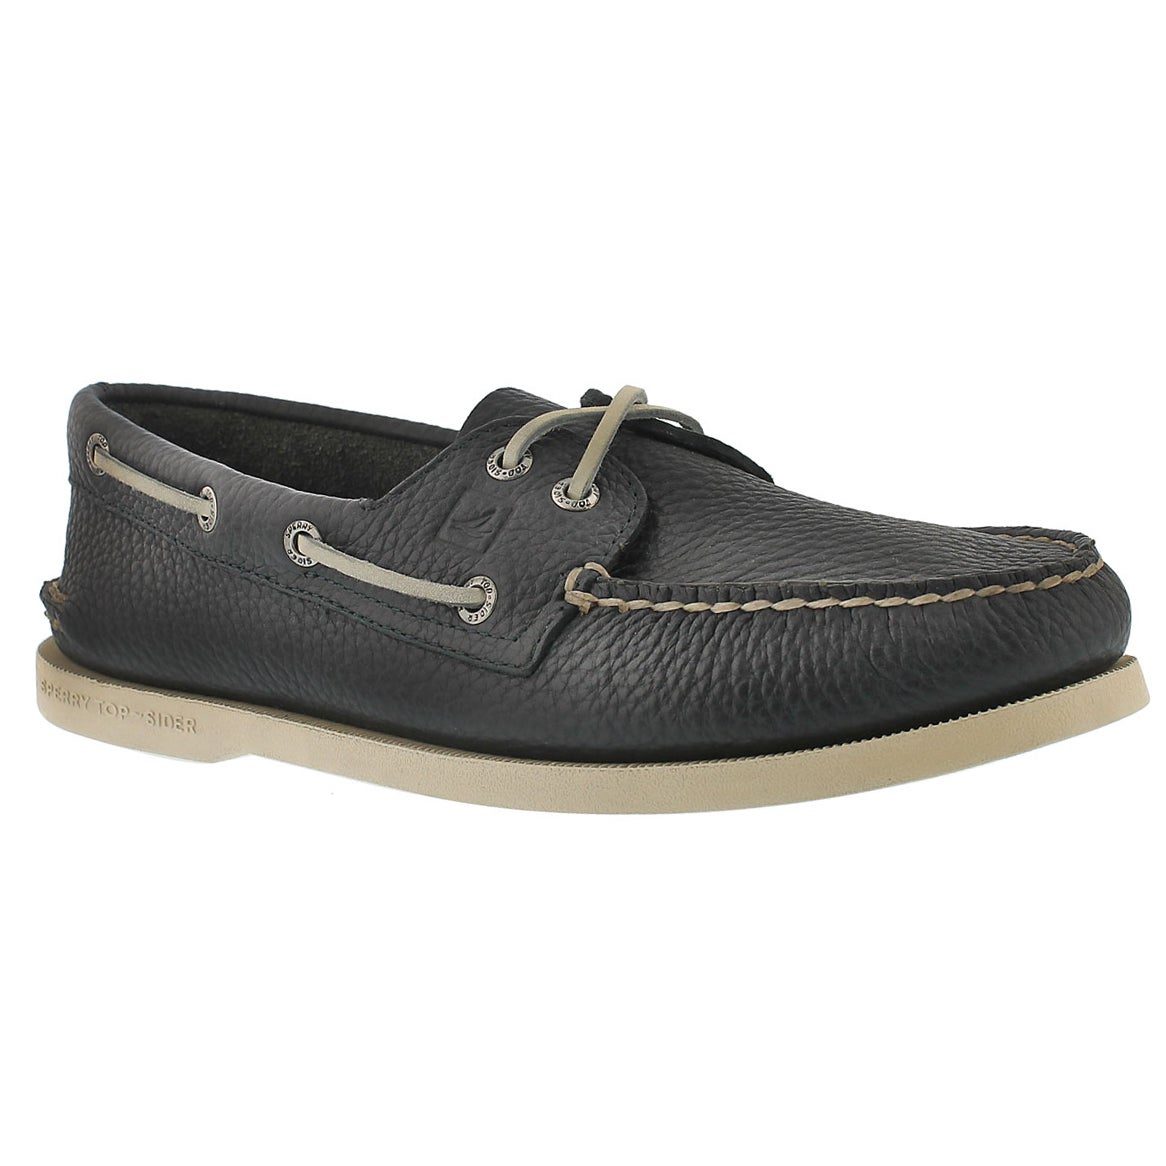 Men's AUTHENTIC ORIGINAL navy leather boat shoes